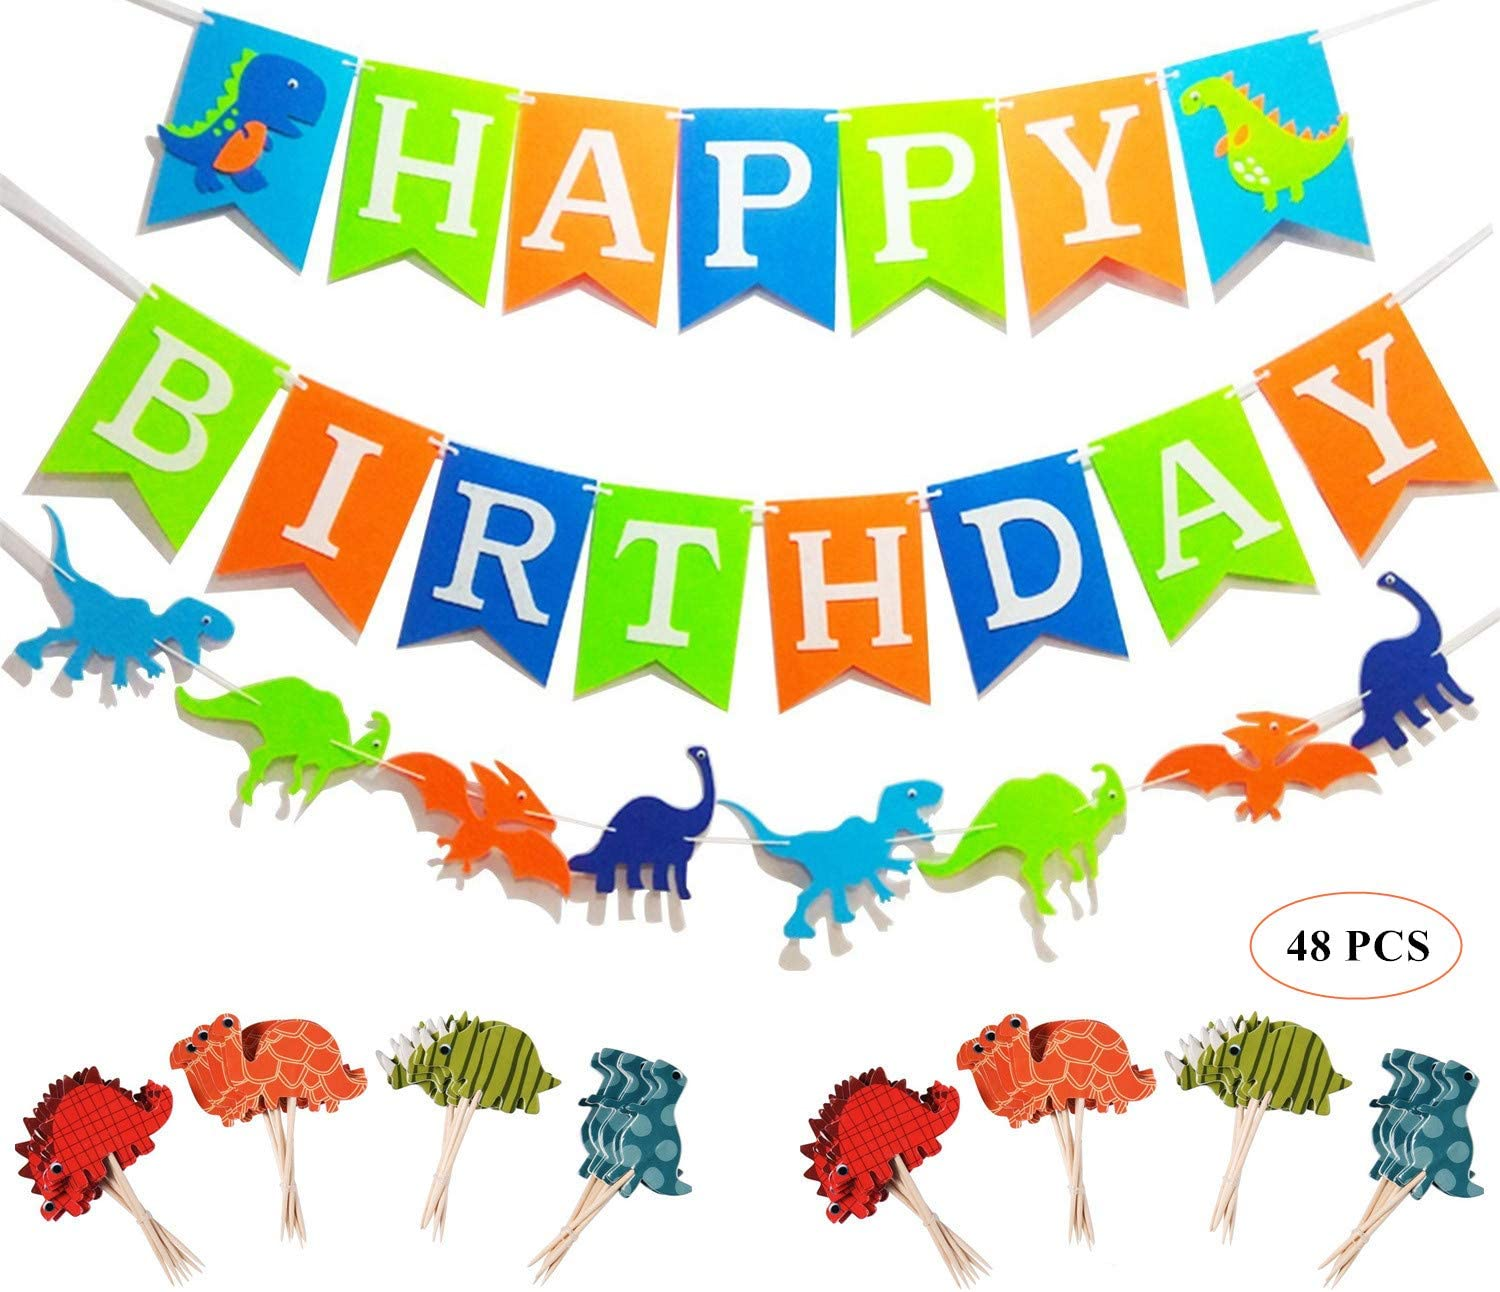 Oexper Dinosaur Happy Birthday Banner with White Letters, Dino Jungle Jurassic Garland and 48 Pieces Dinosaur Cupcake Toppers for Dinosaur Theme Boy's Birthday Décor Kids Party Supplies Decorations Party Favors